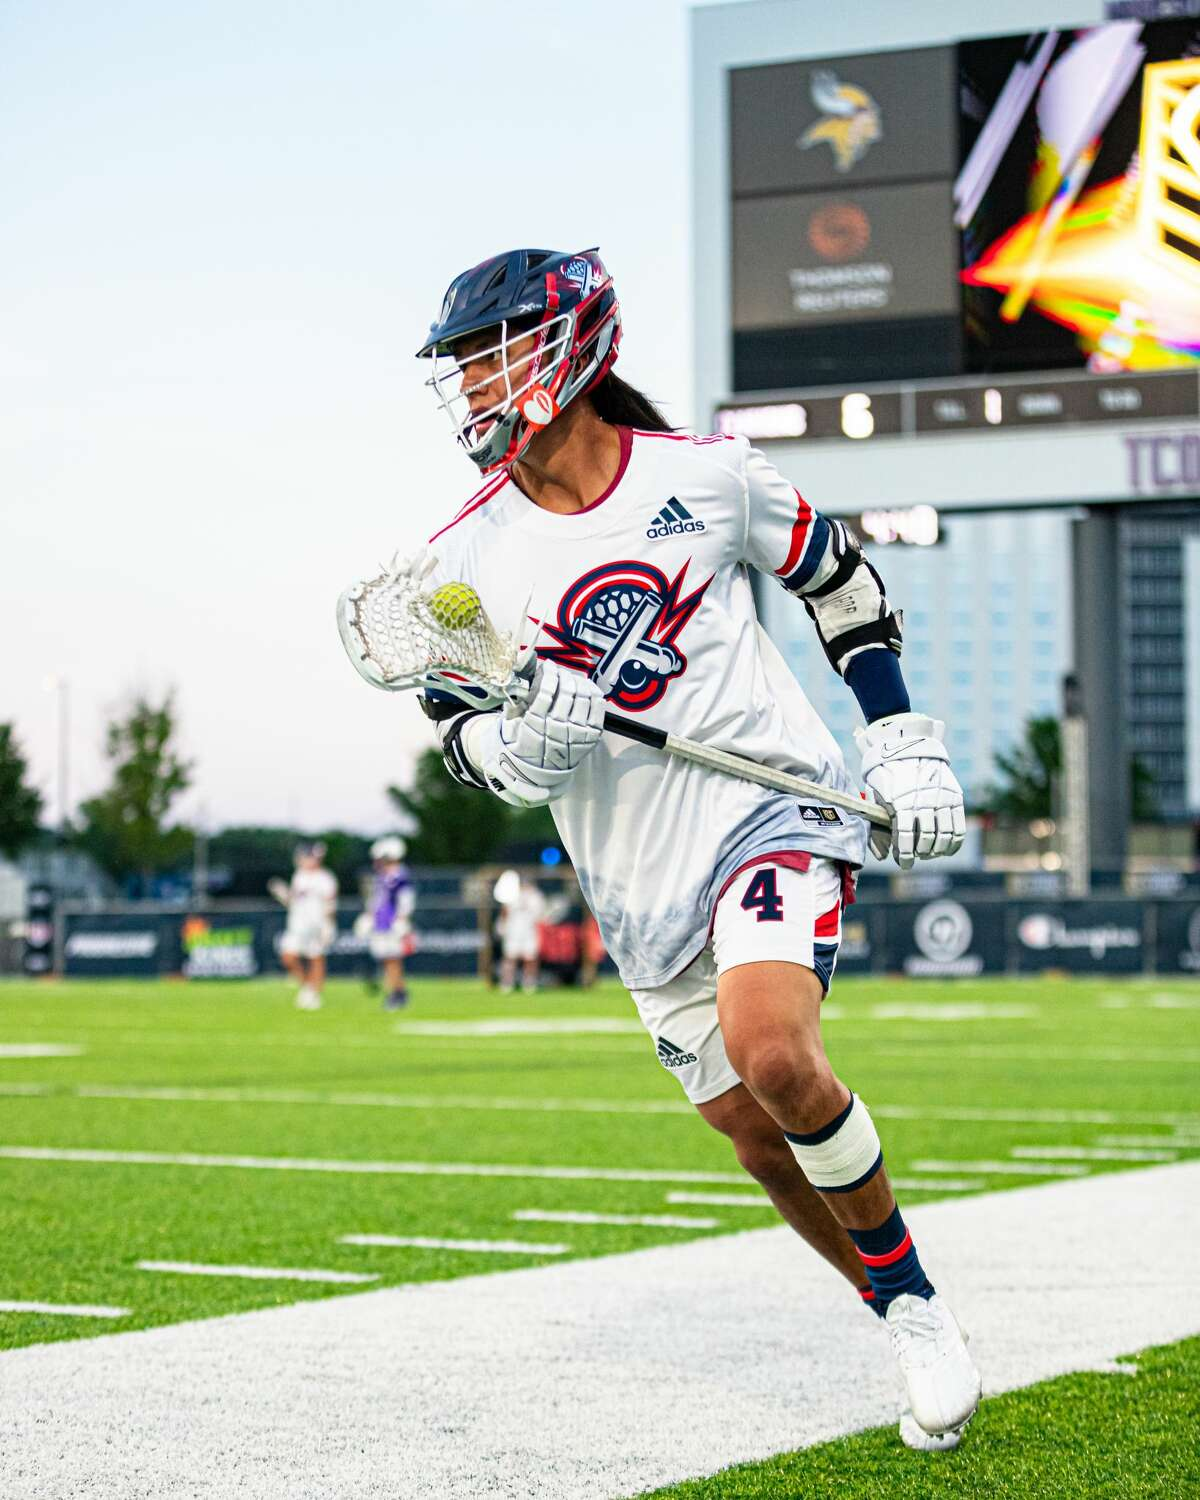 Lyle Thompson, now with the Cannons in the Premier Lacrosse League, scored an NCAA Division I record 400 points during his University at Albany career.